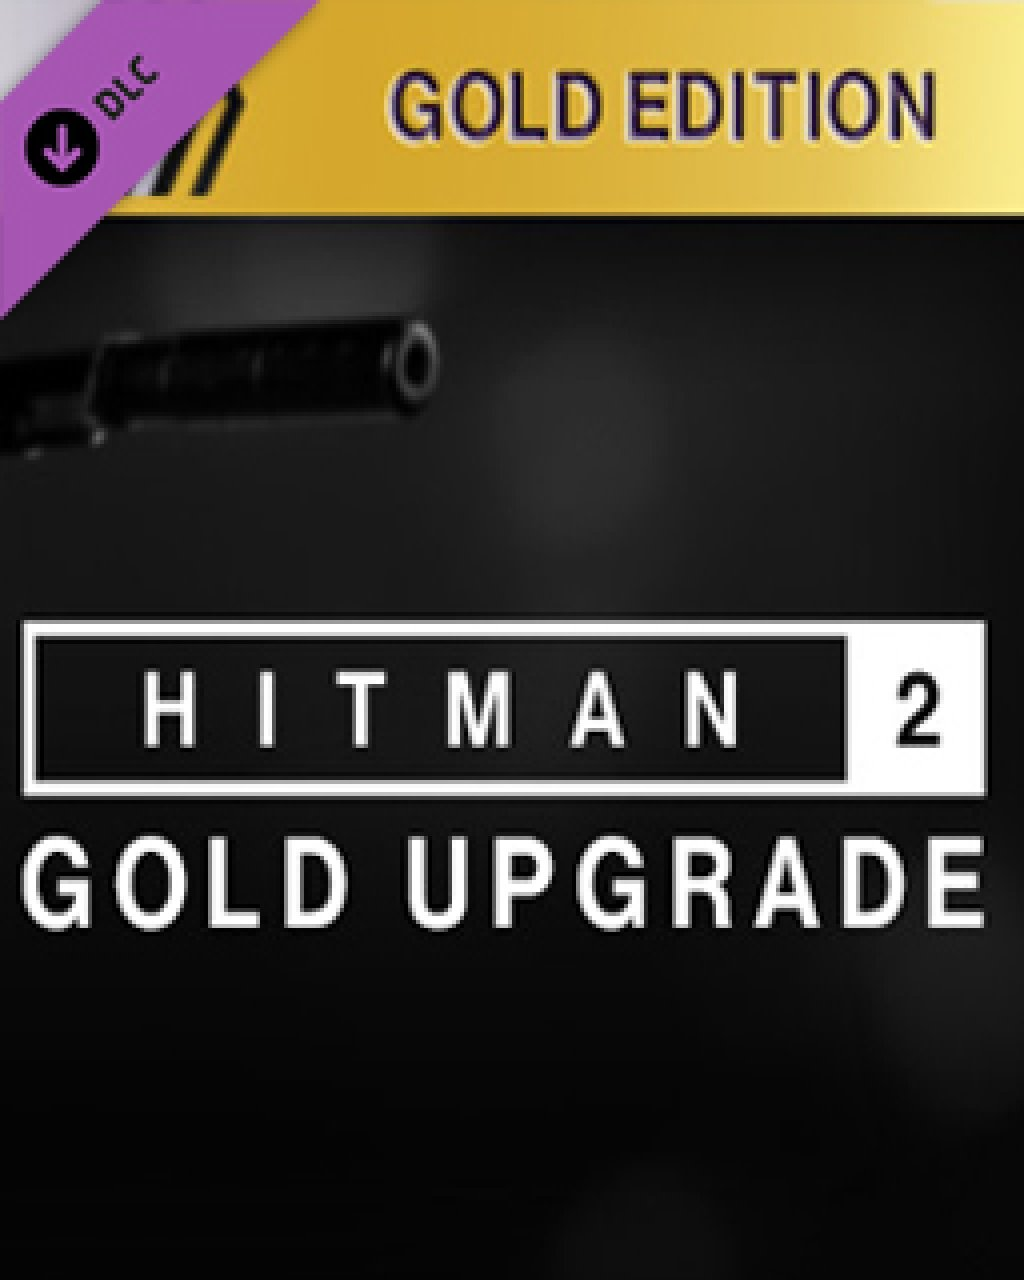 HITMAN 2 Silver to Gold Upgrade